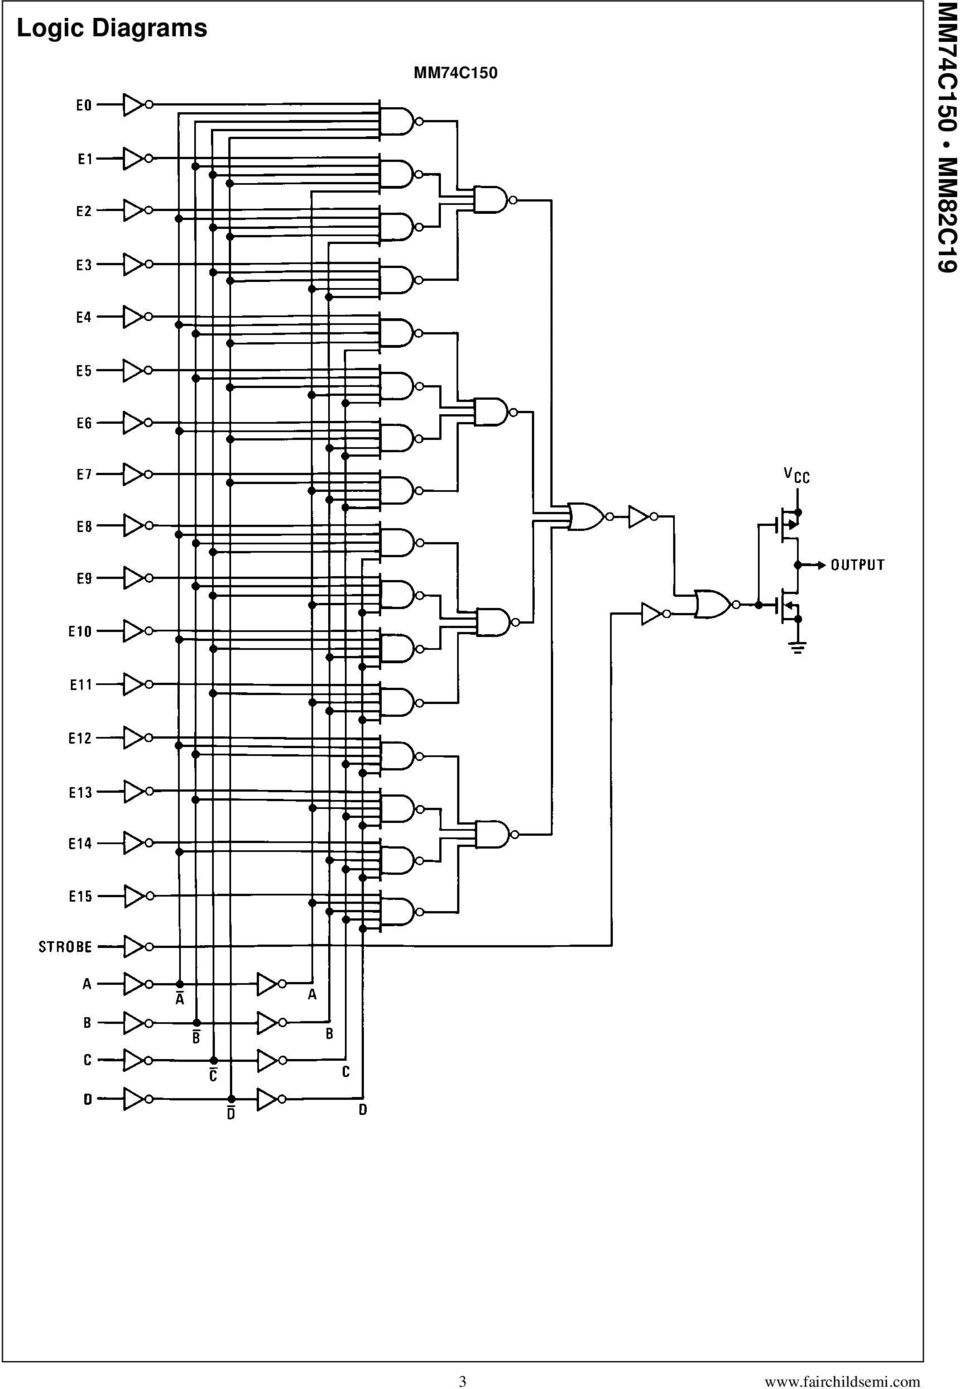 Mm74c150 Mm82c19 16 Line To 1 Multiplexer 3 State Logic Diagram 4 Diagrams Continued